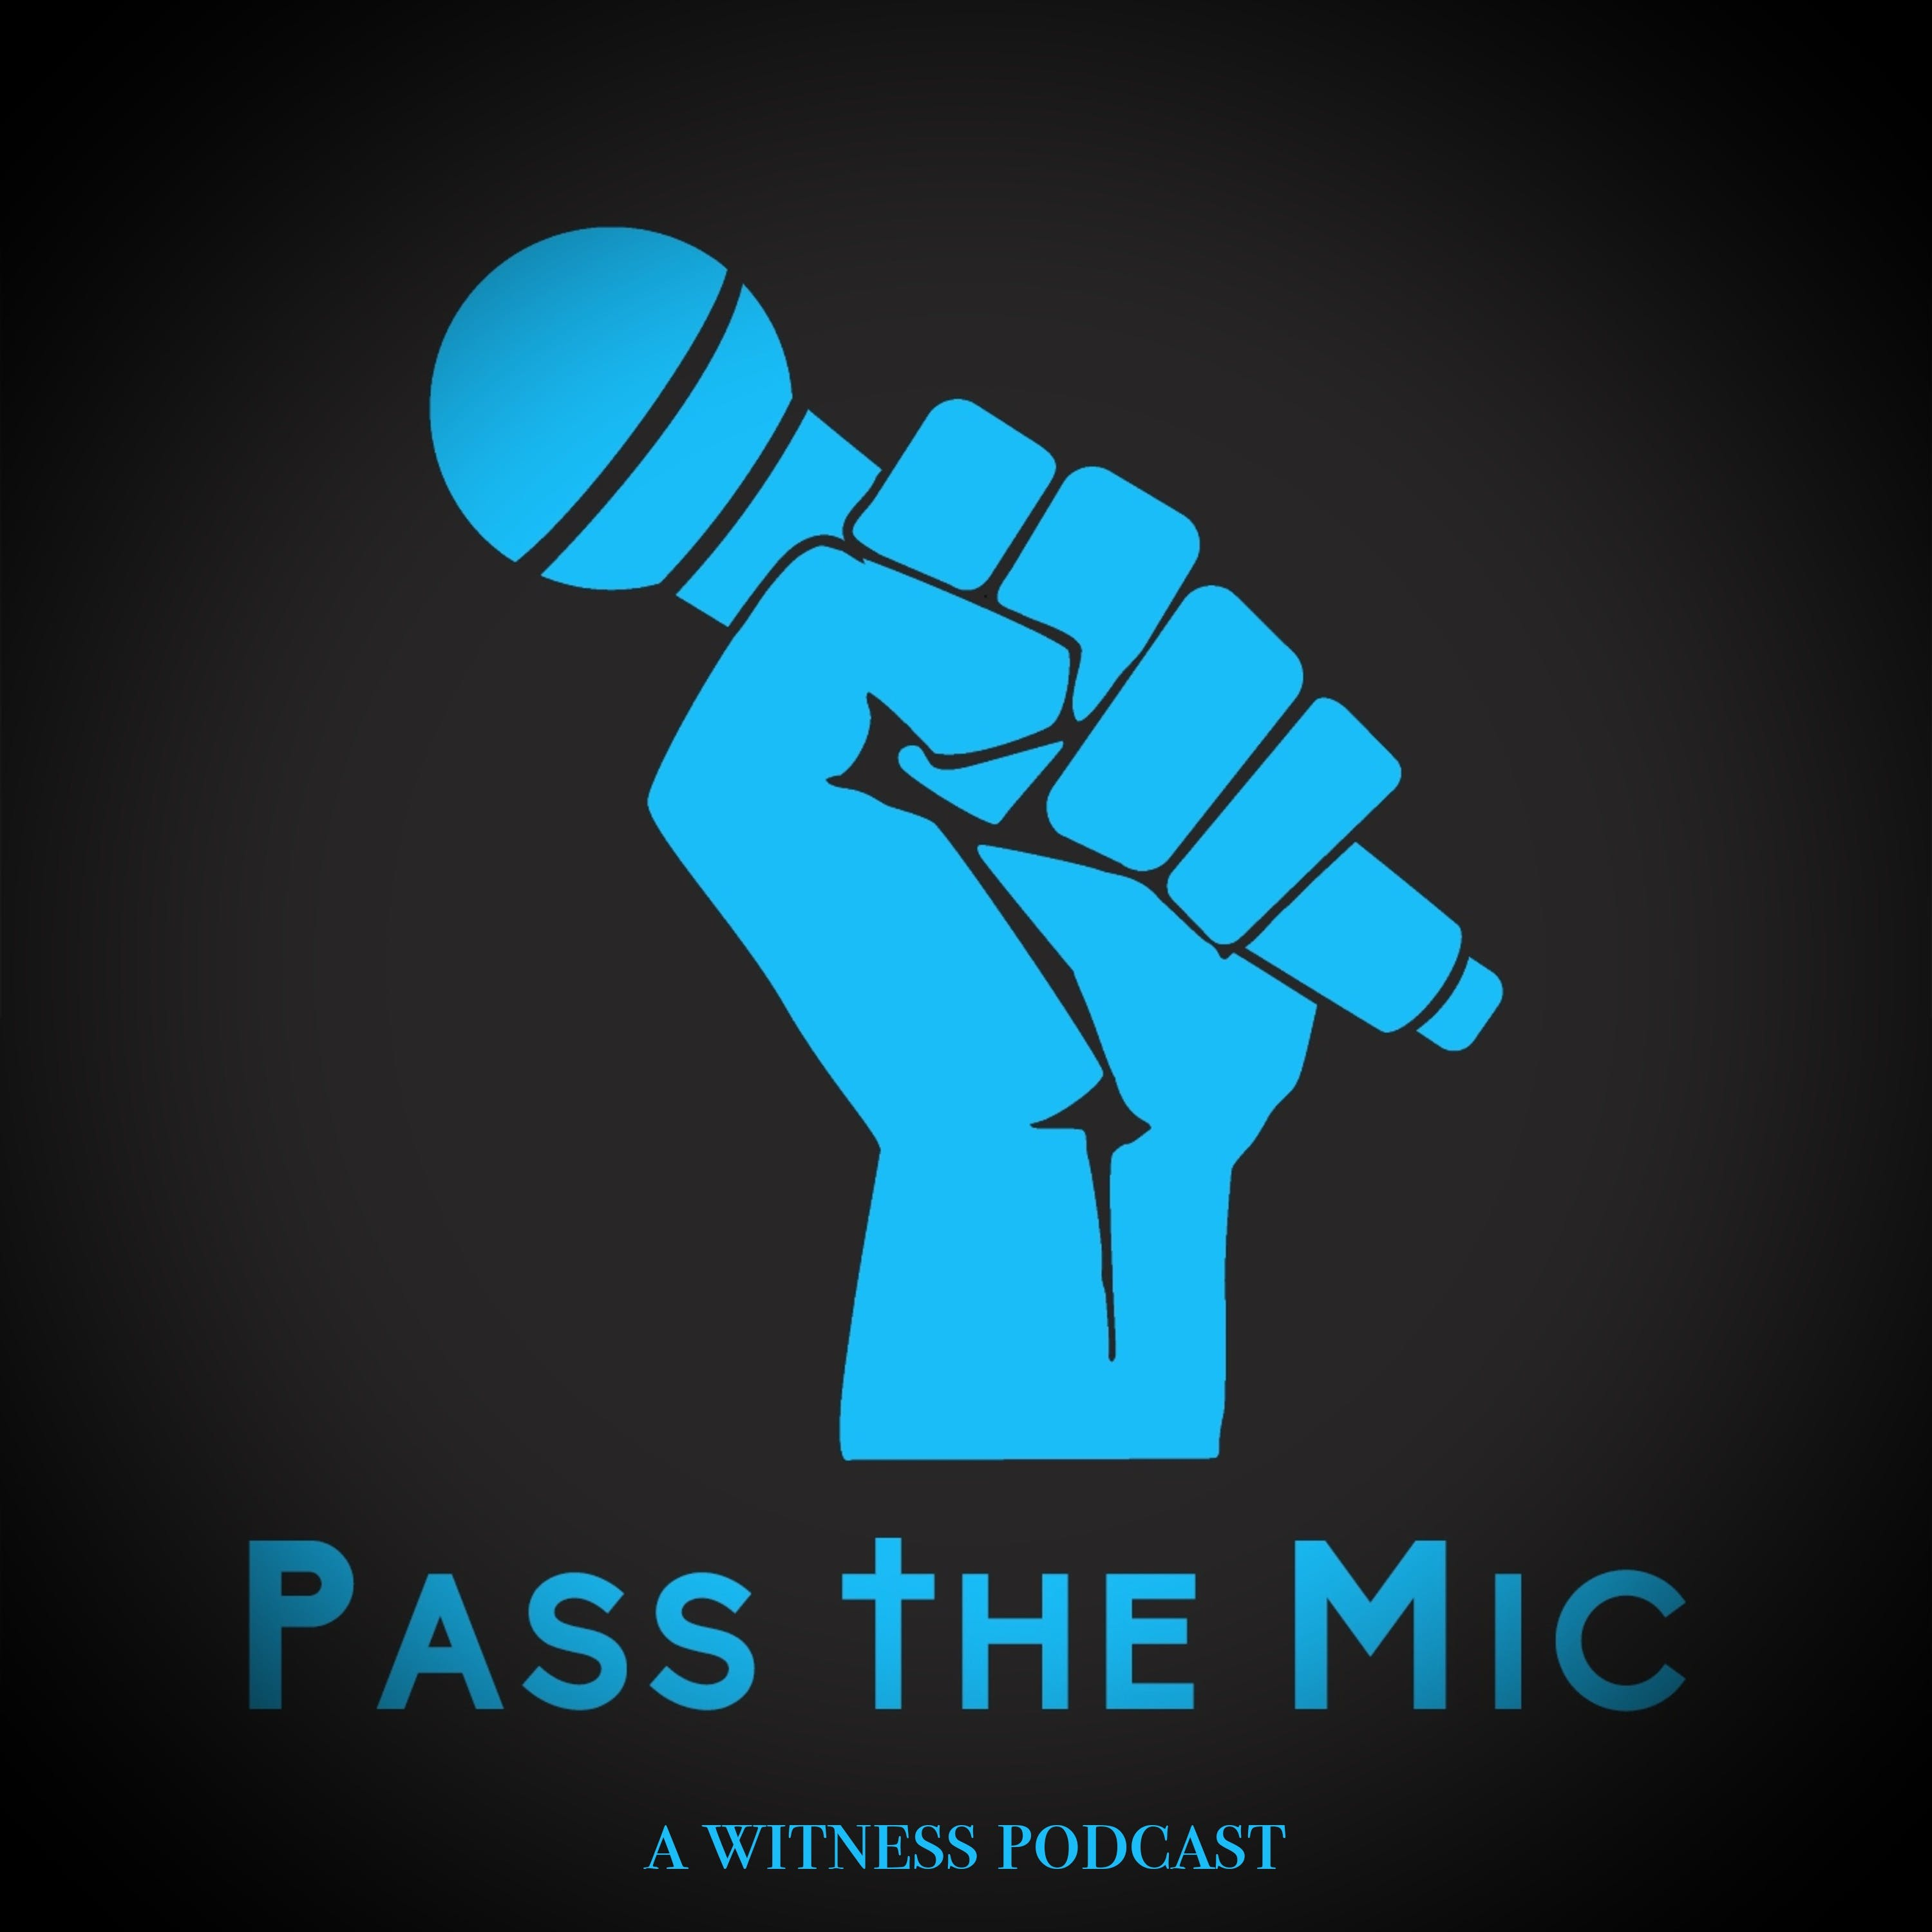 Pass The Mic podcast show image